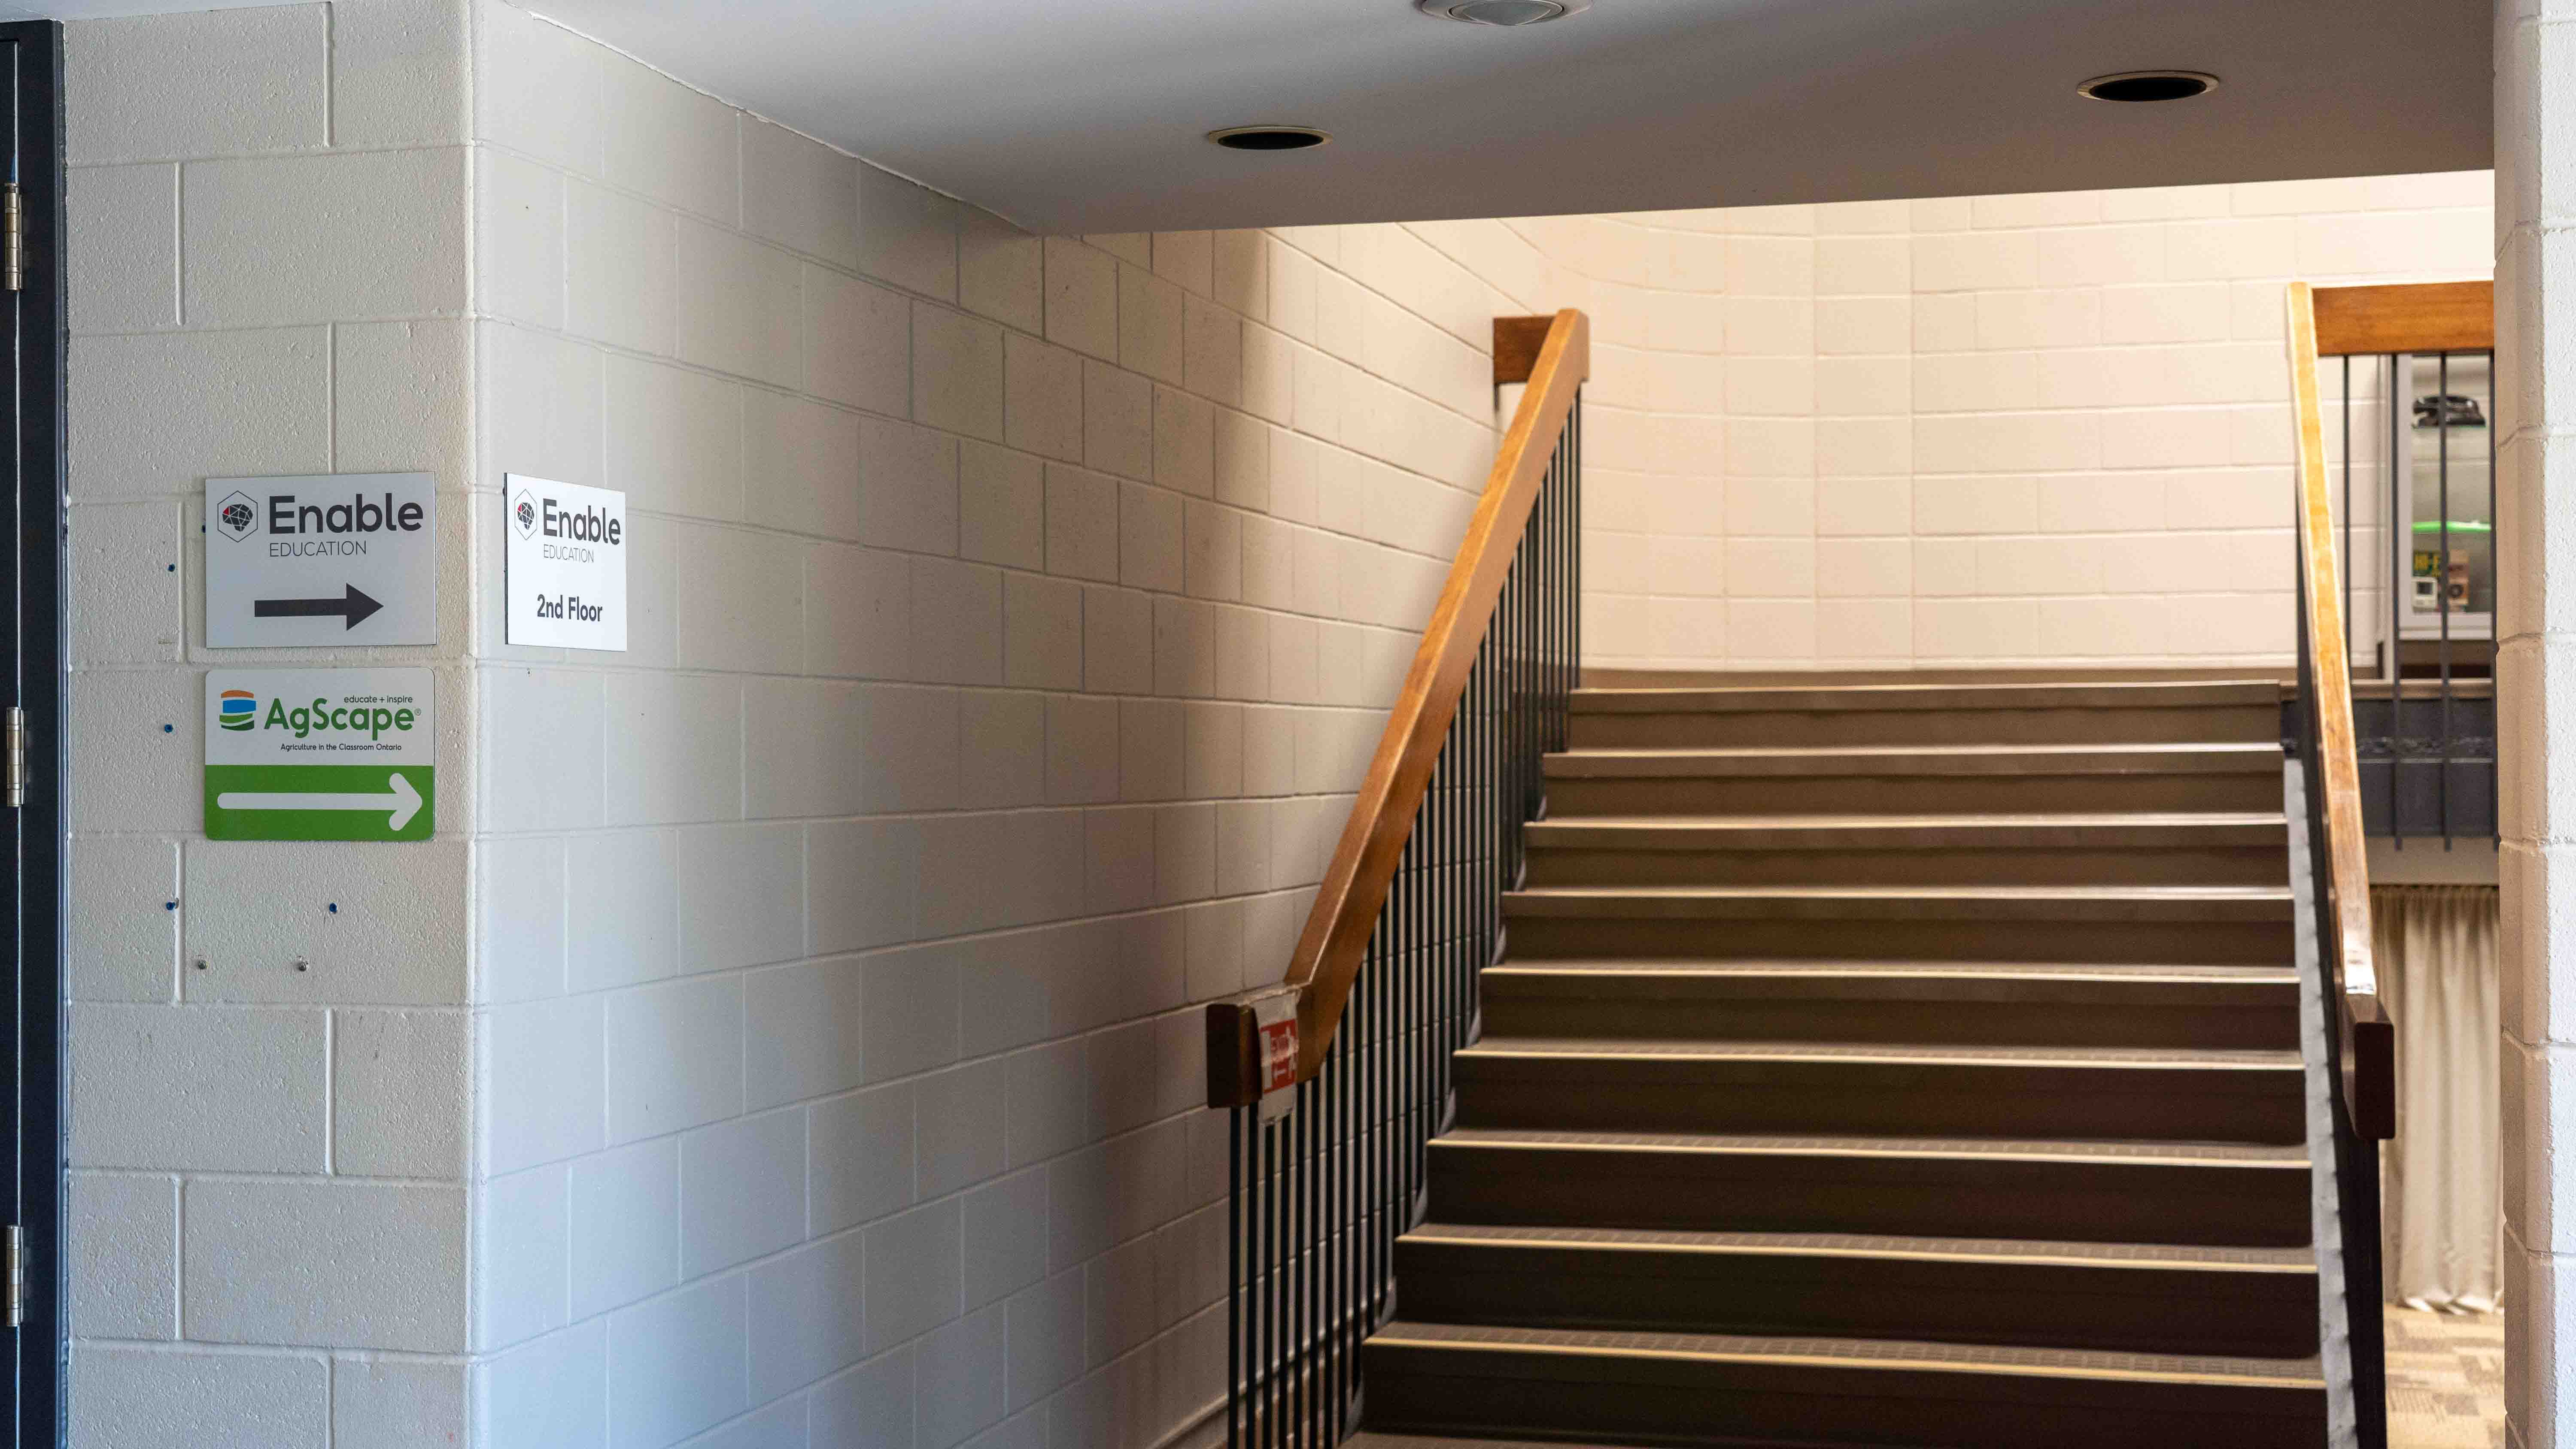 Stairwell leading up to Enable Education